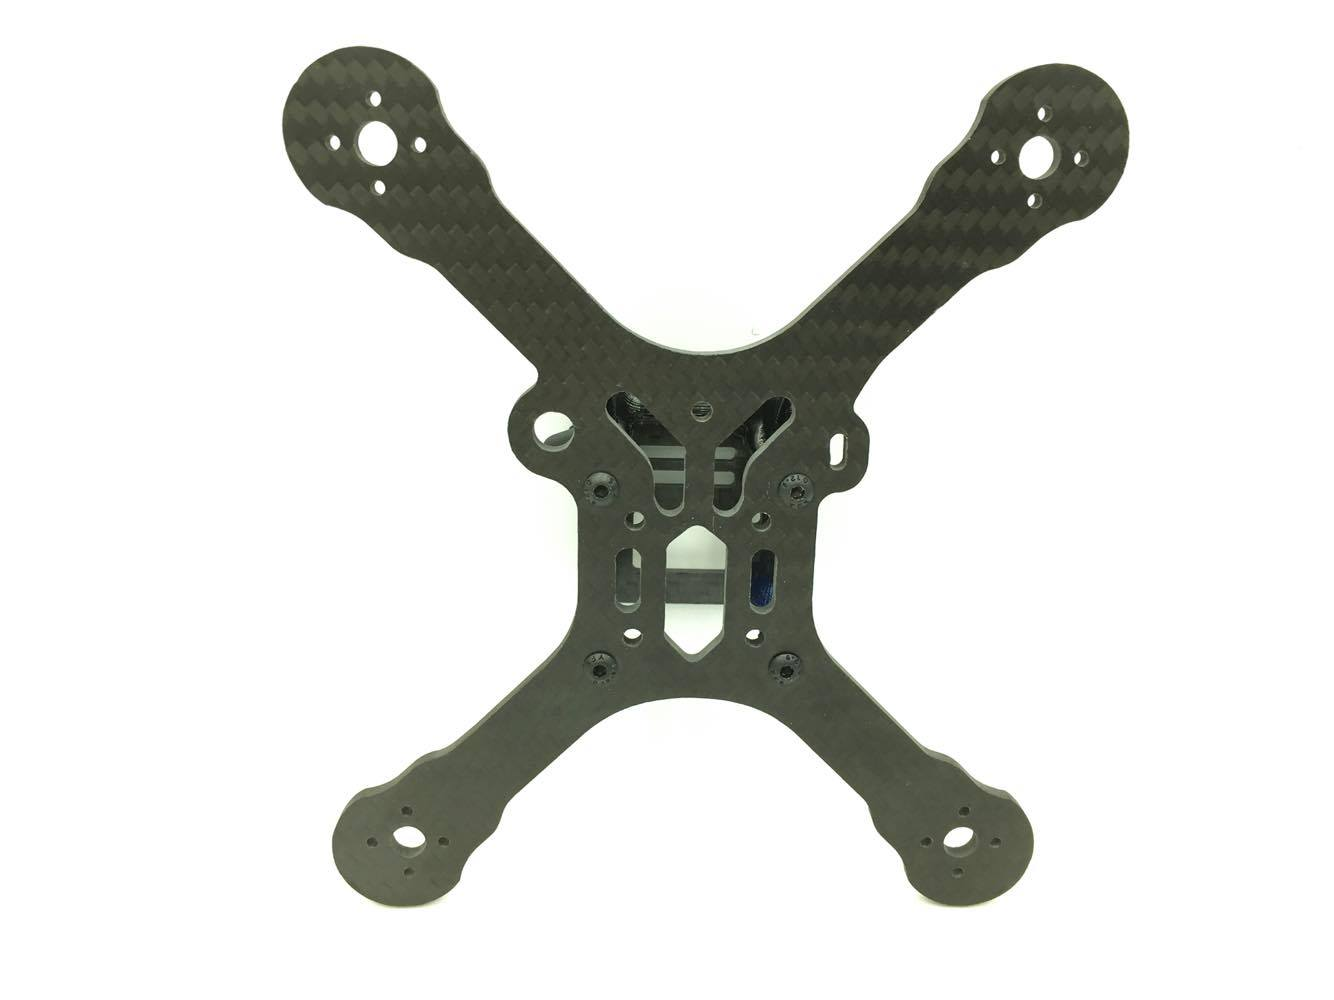 HyperBaby 3 inch Racing Frame